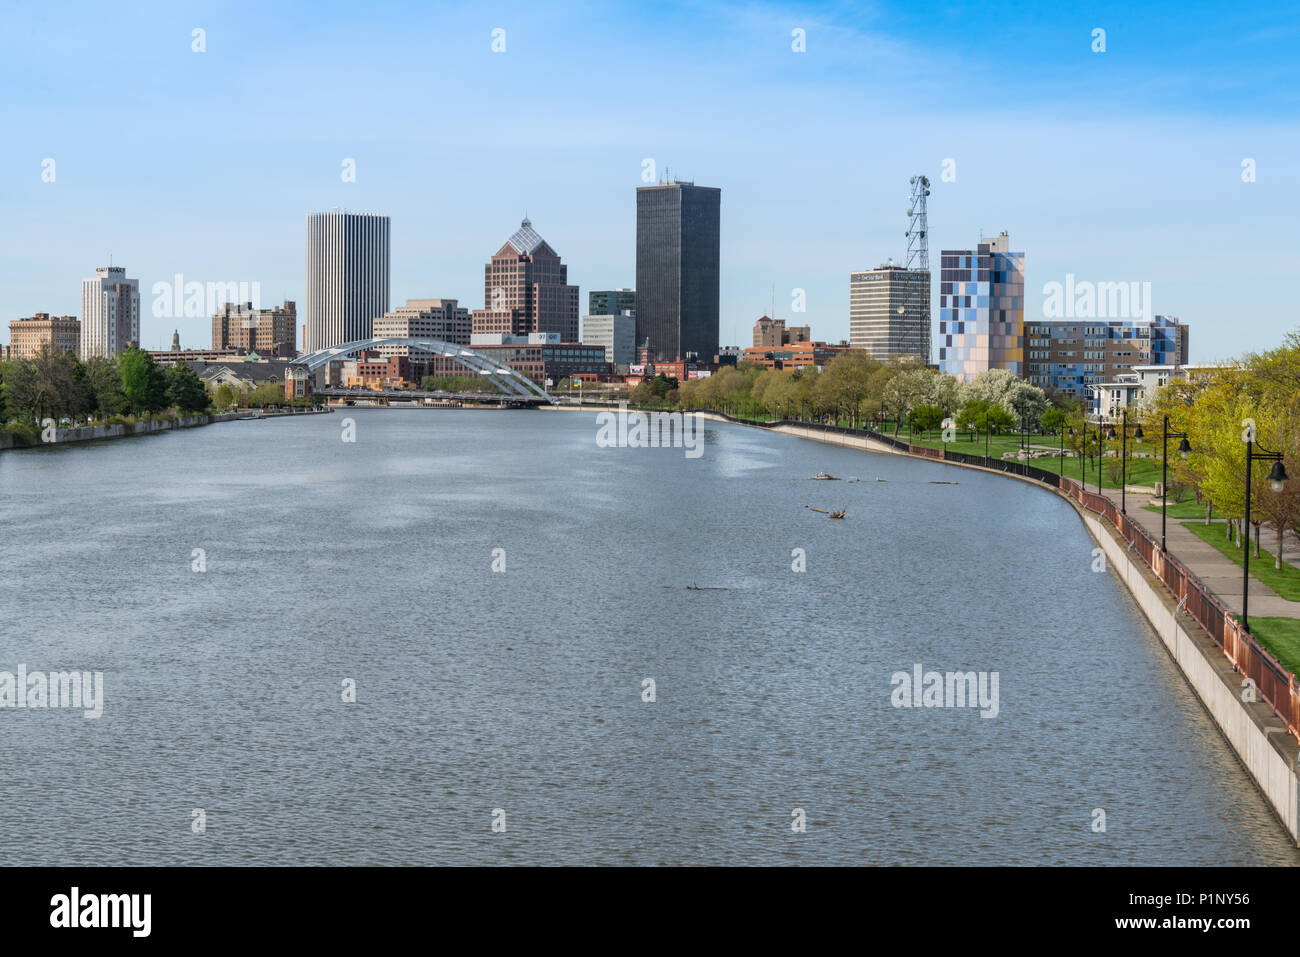 ROCHESTER, NY - MAY 14, 2018: Skyline of Rochester, New York along  Genesee River - Stock Image